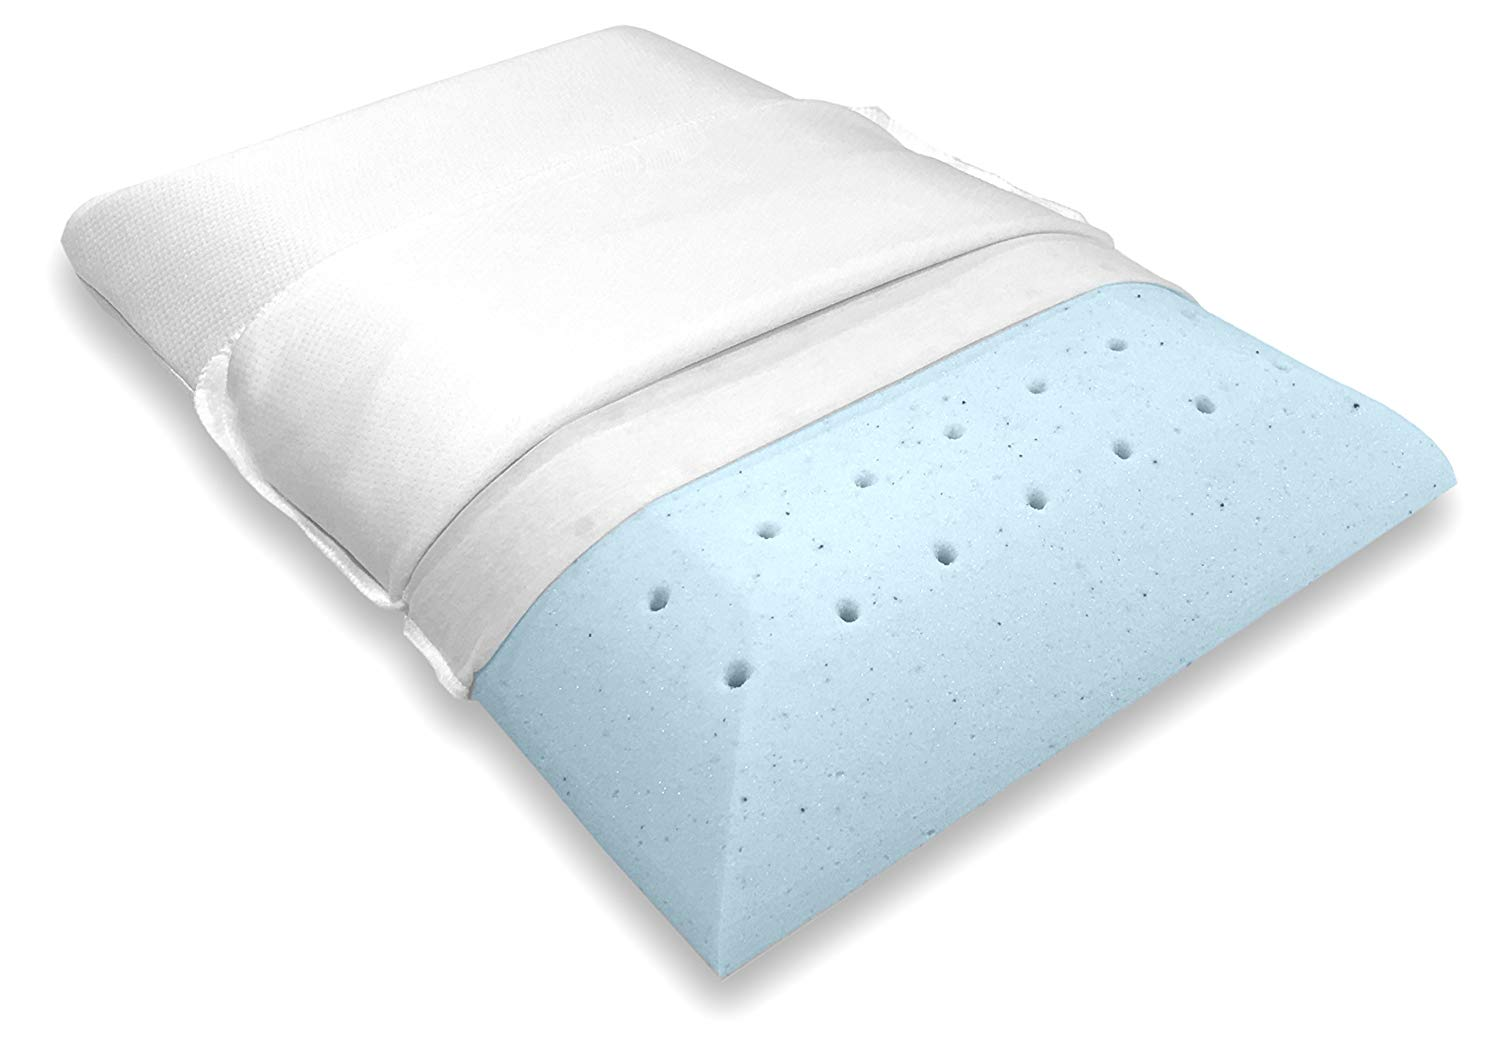 Bluewave Bedding Gel Pillow Review by www.snoremagazine.com